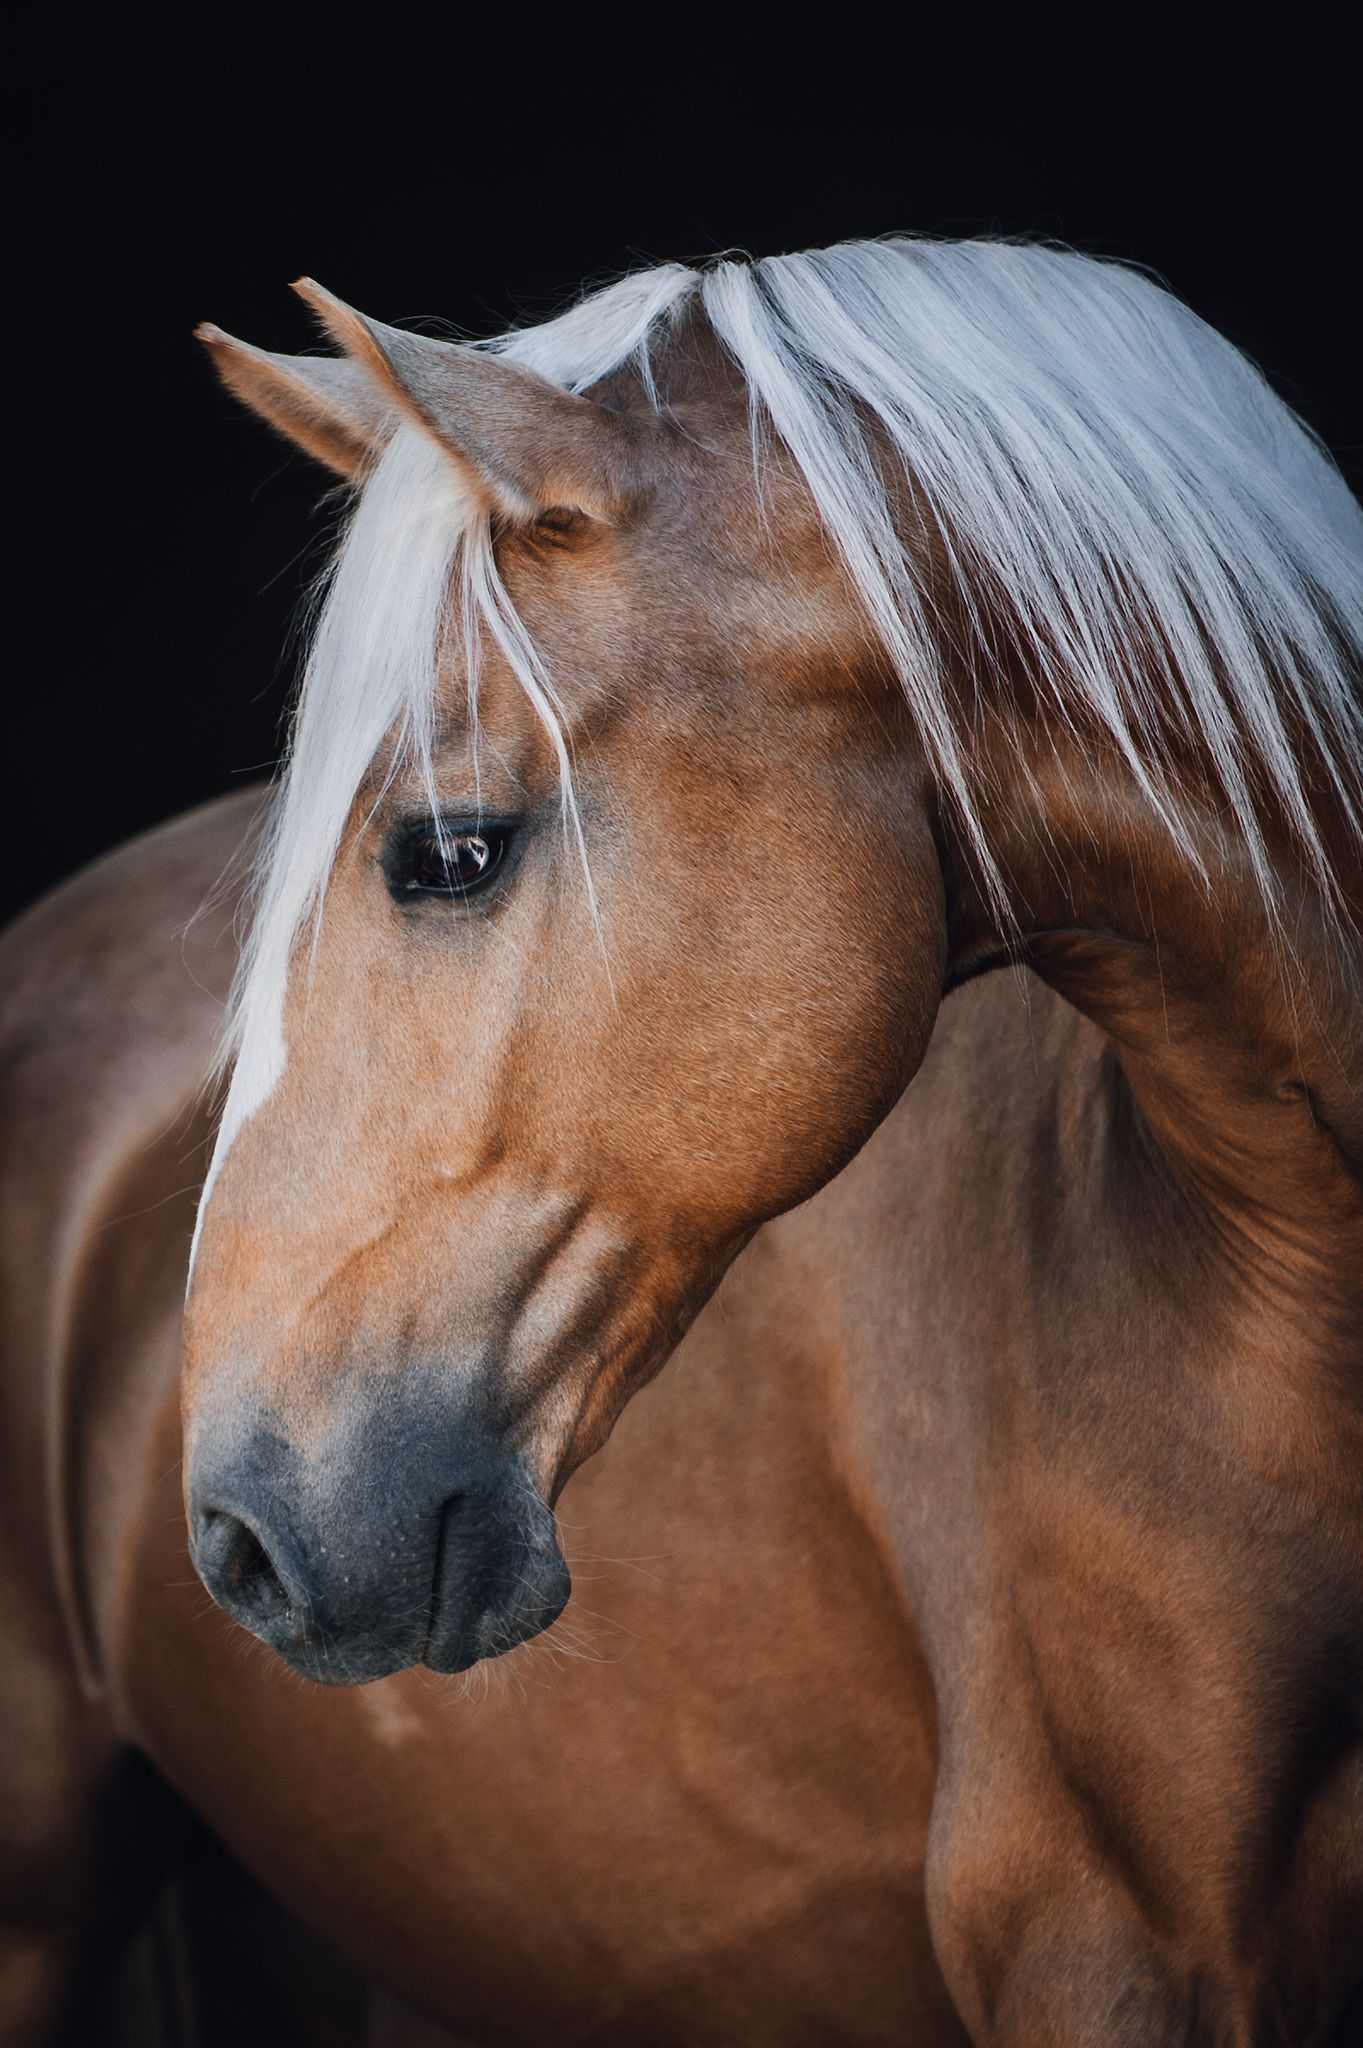 Horse Photography In 2020 Beautiful Horses Photography Horses Beautiful Horses